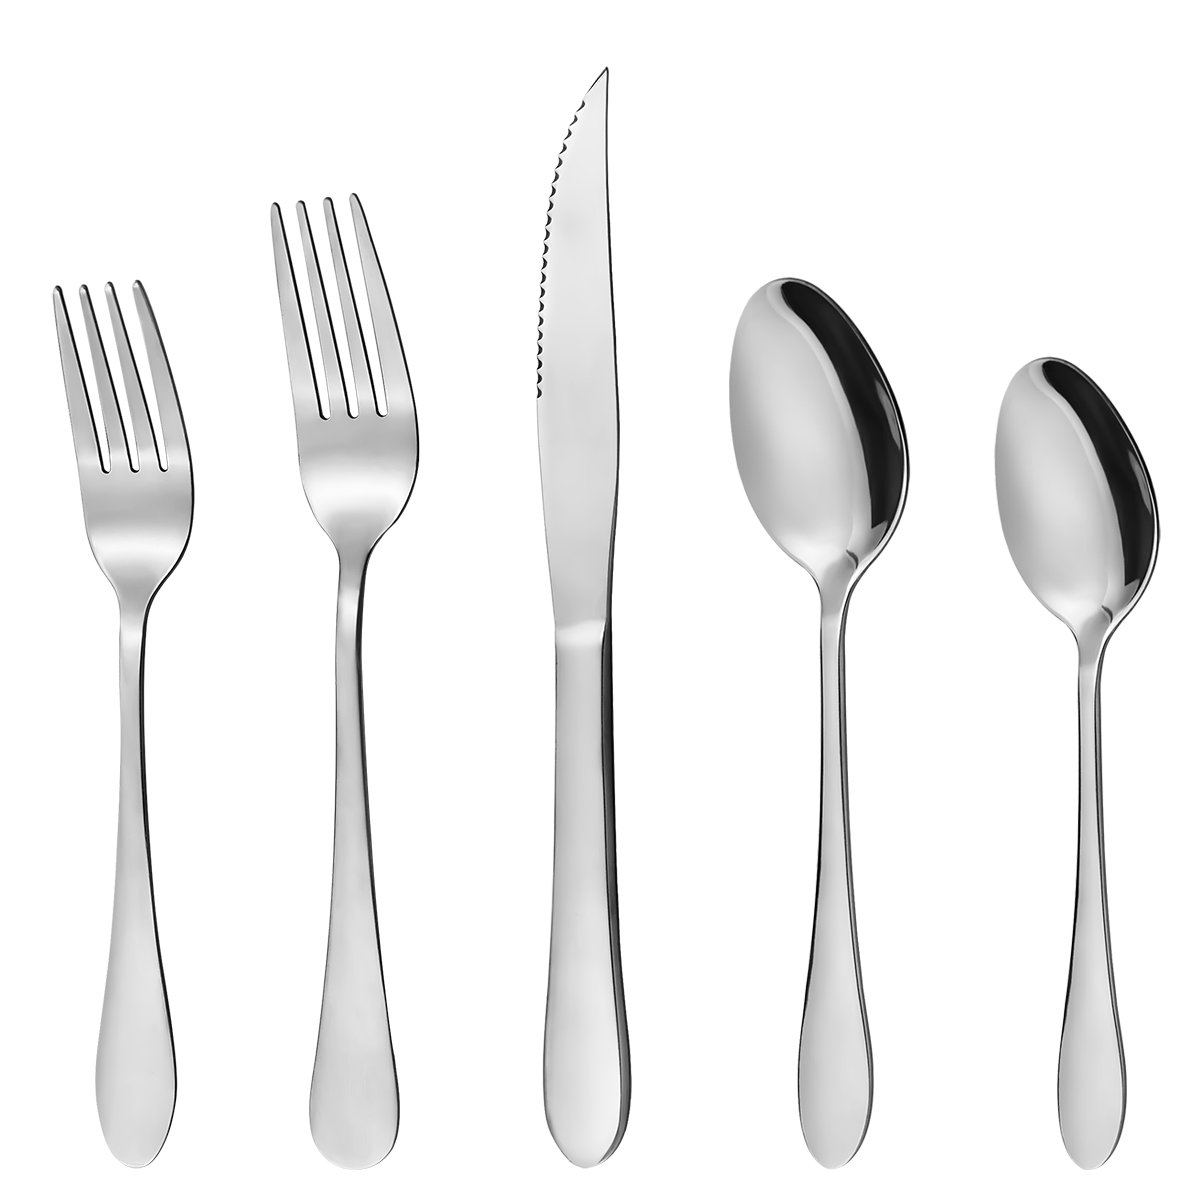 Hippih Food Grade Stainless Steel Flatware 20 Piece Anti-Scald Metal Cutlery Set